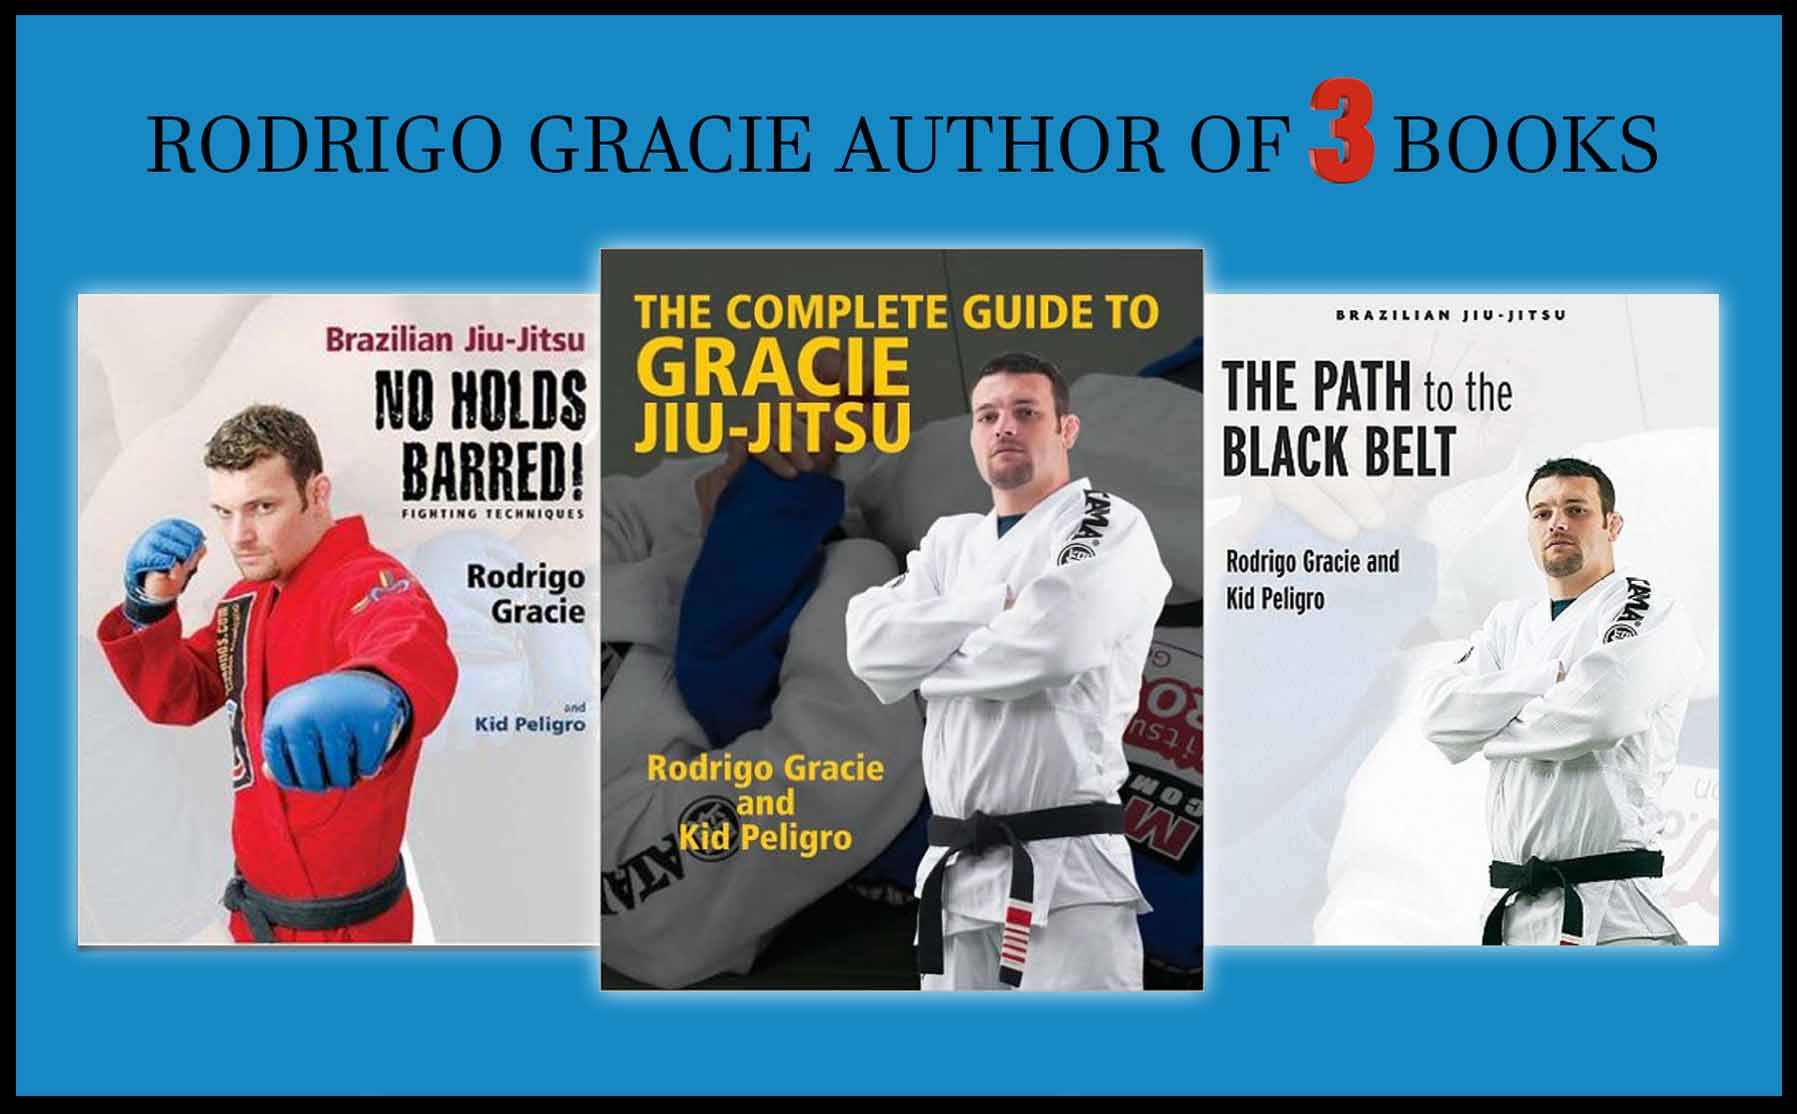 d8f39ffc08ccd Rodrigo Gracie is an ADCC Submission Grappling World Champion, undefeated in  Pride Fighting Championships and Author or 3 best-selling books.